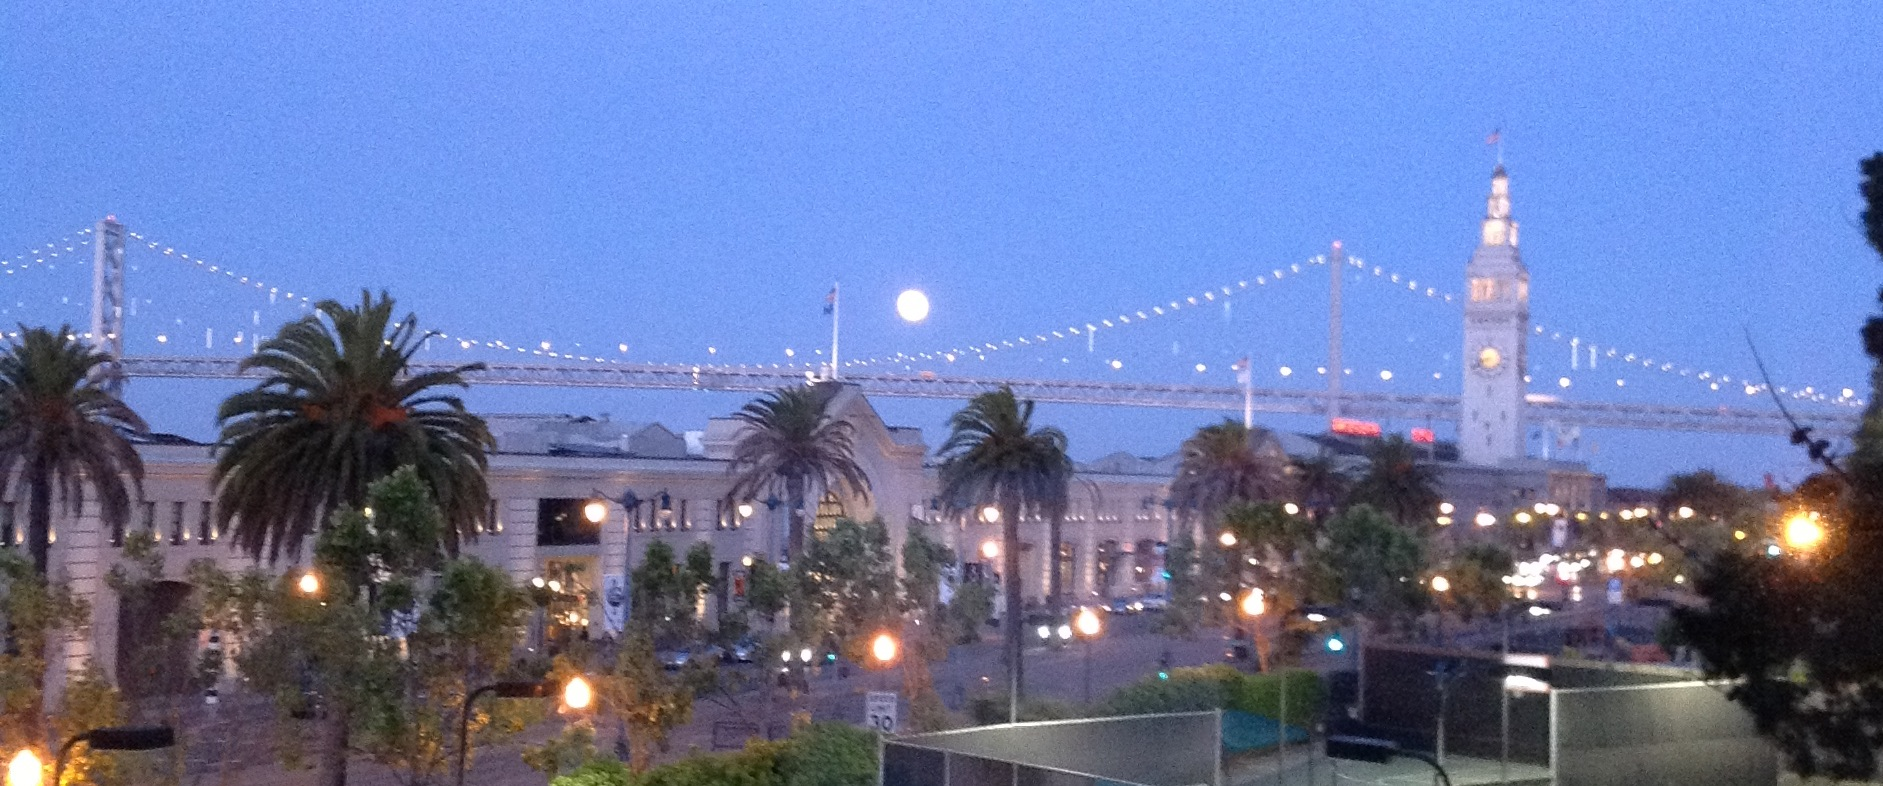 Ferry Building Moon